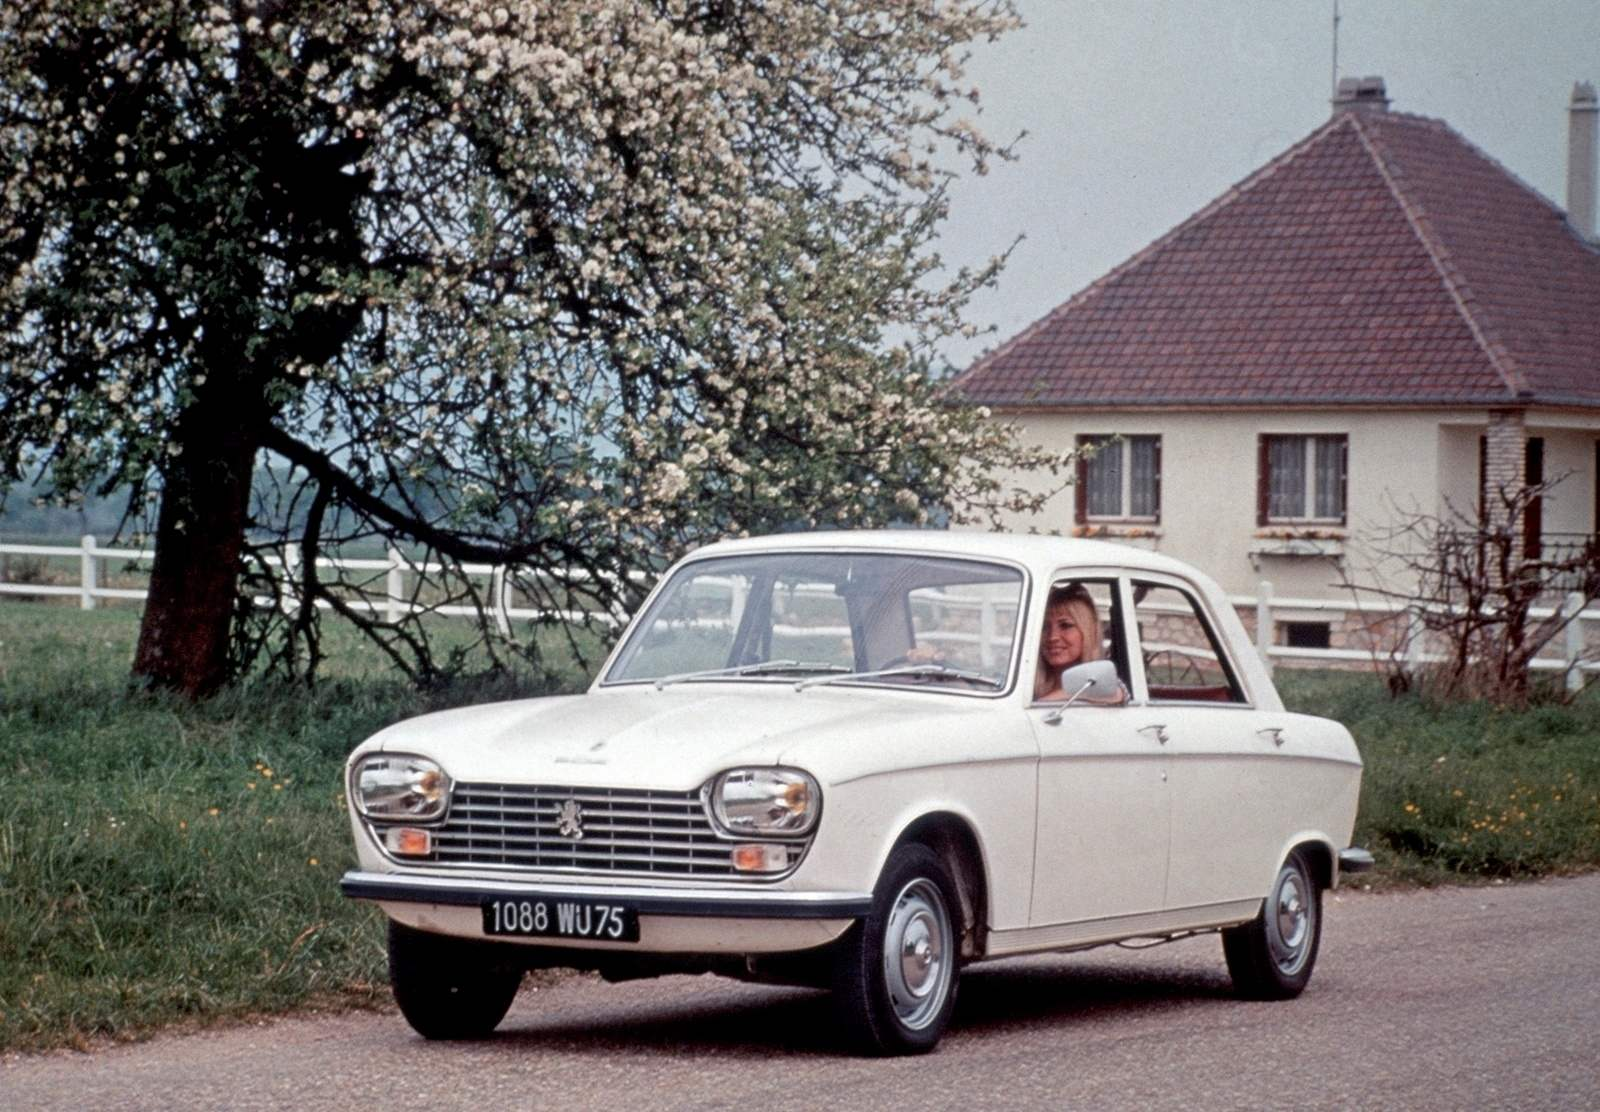 PEUGEOT 204 1965 release is the first front-drive car company, are equipped with aluminum engine, rack and pinion steering and independent suspension